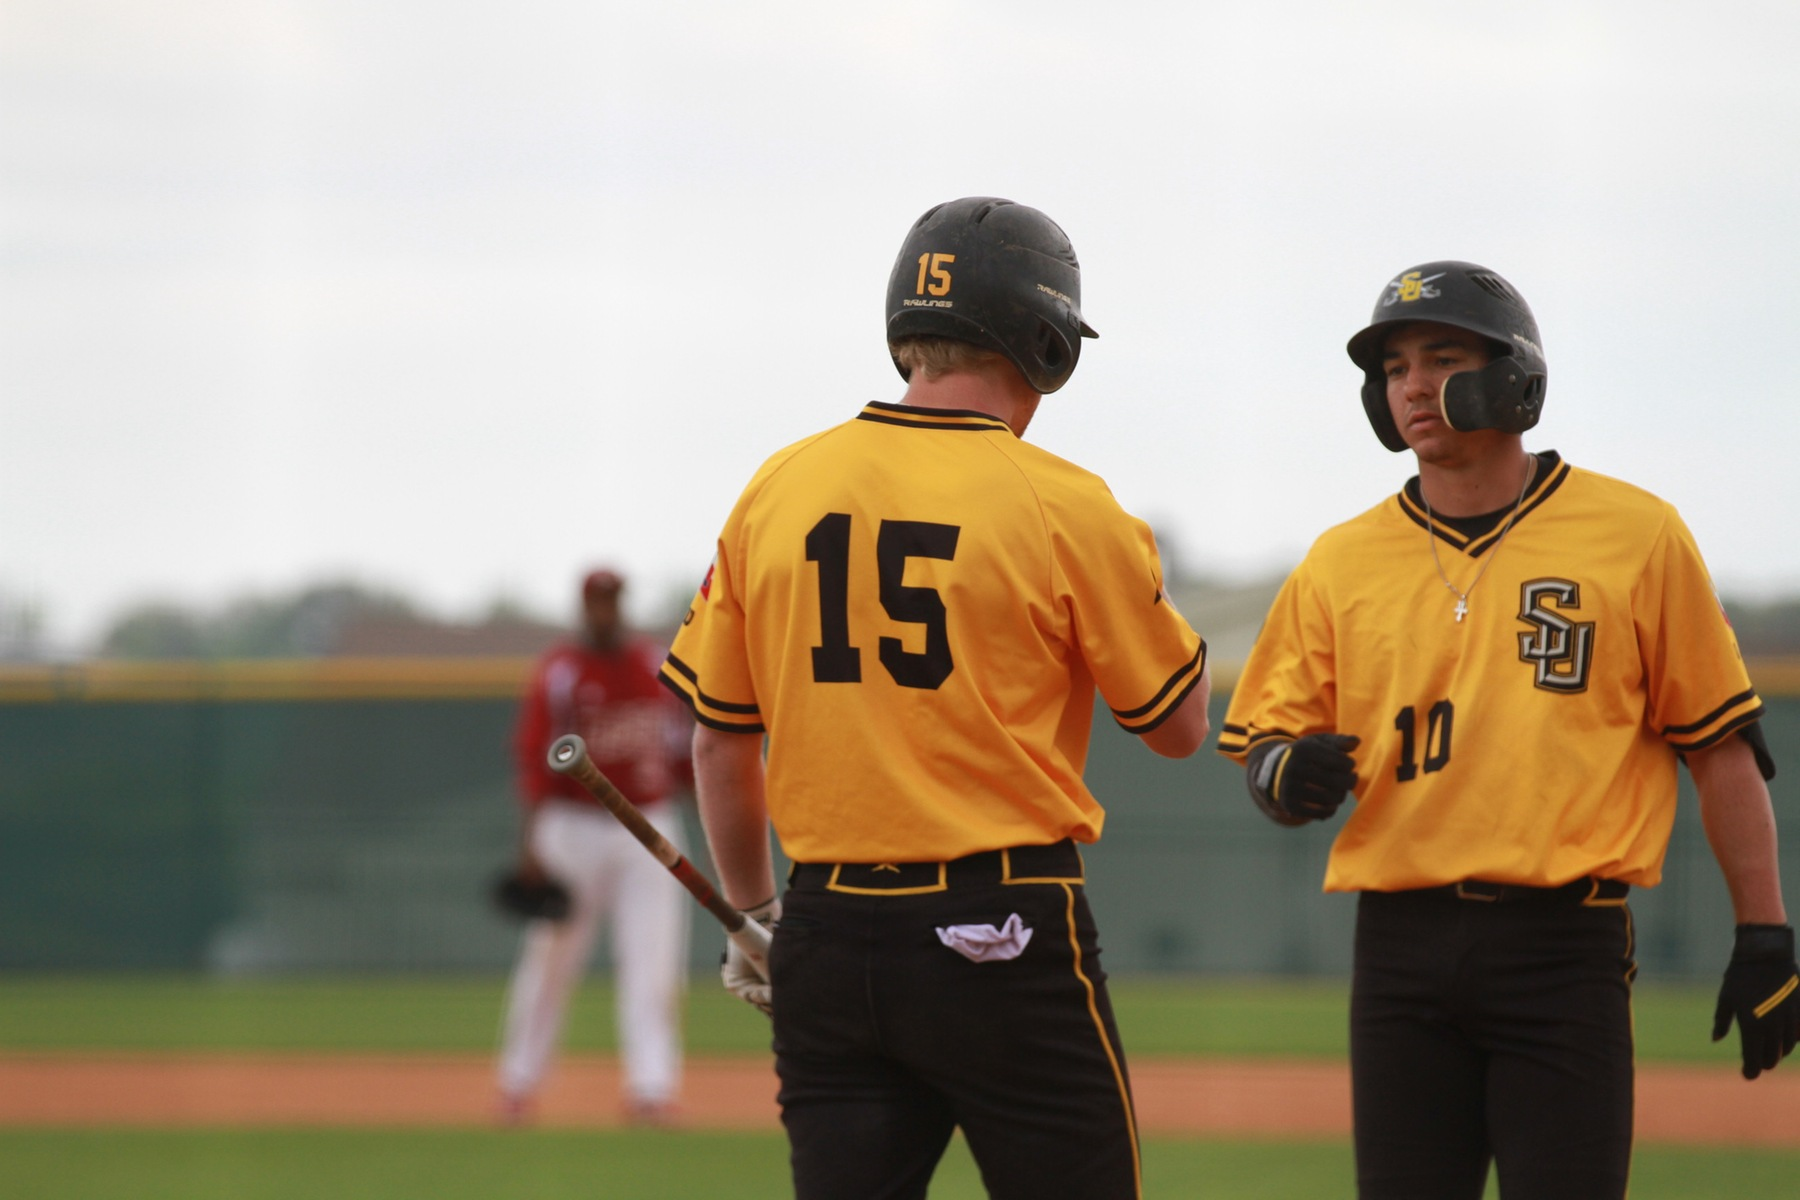 Pirates Drop Series to Texas Lutheran University